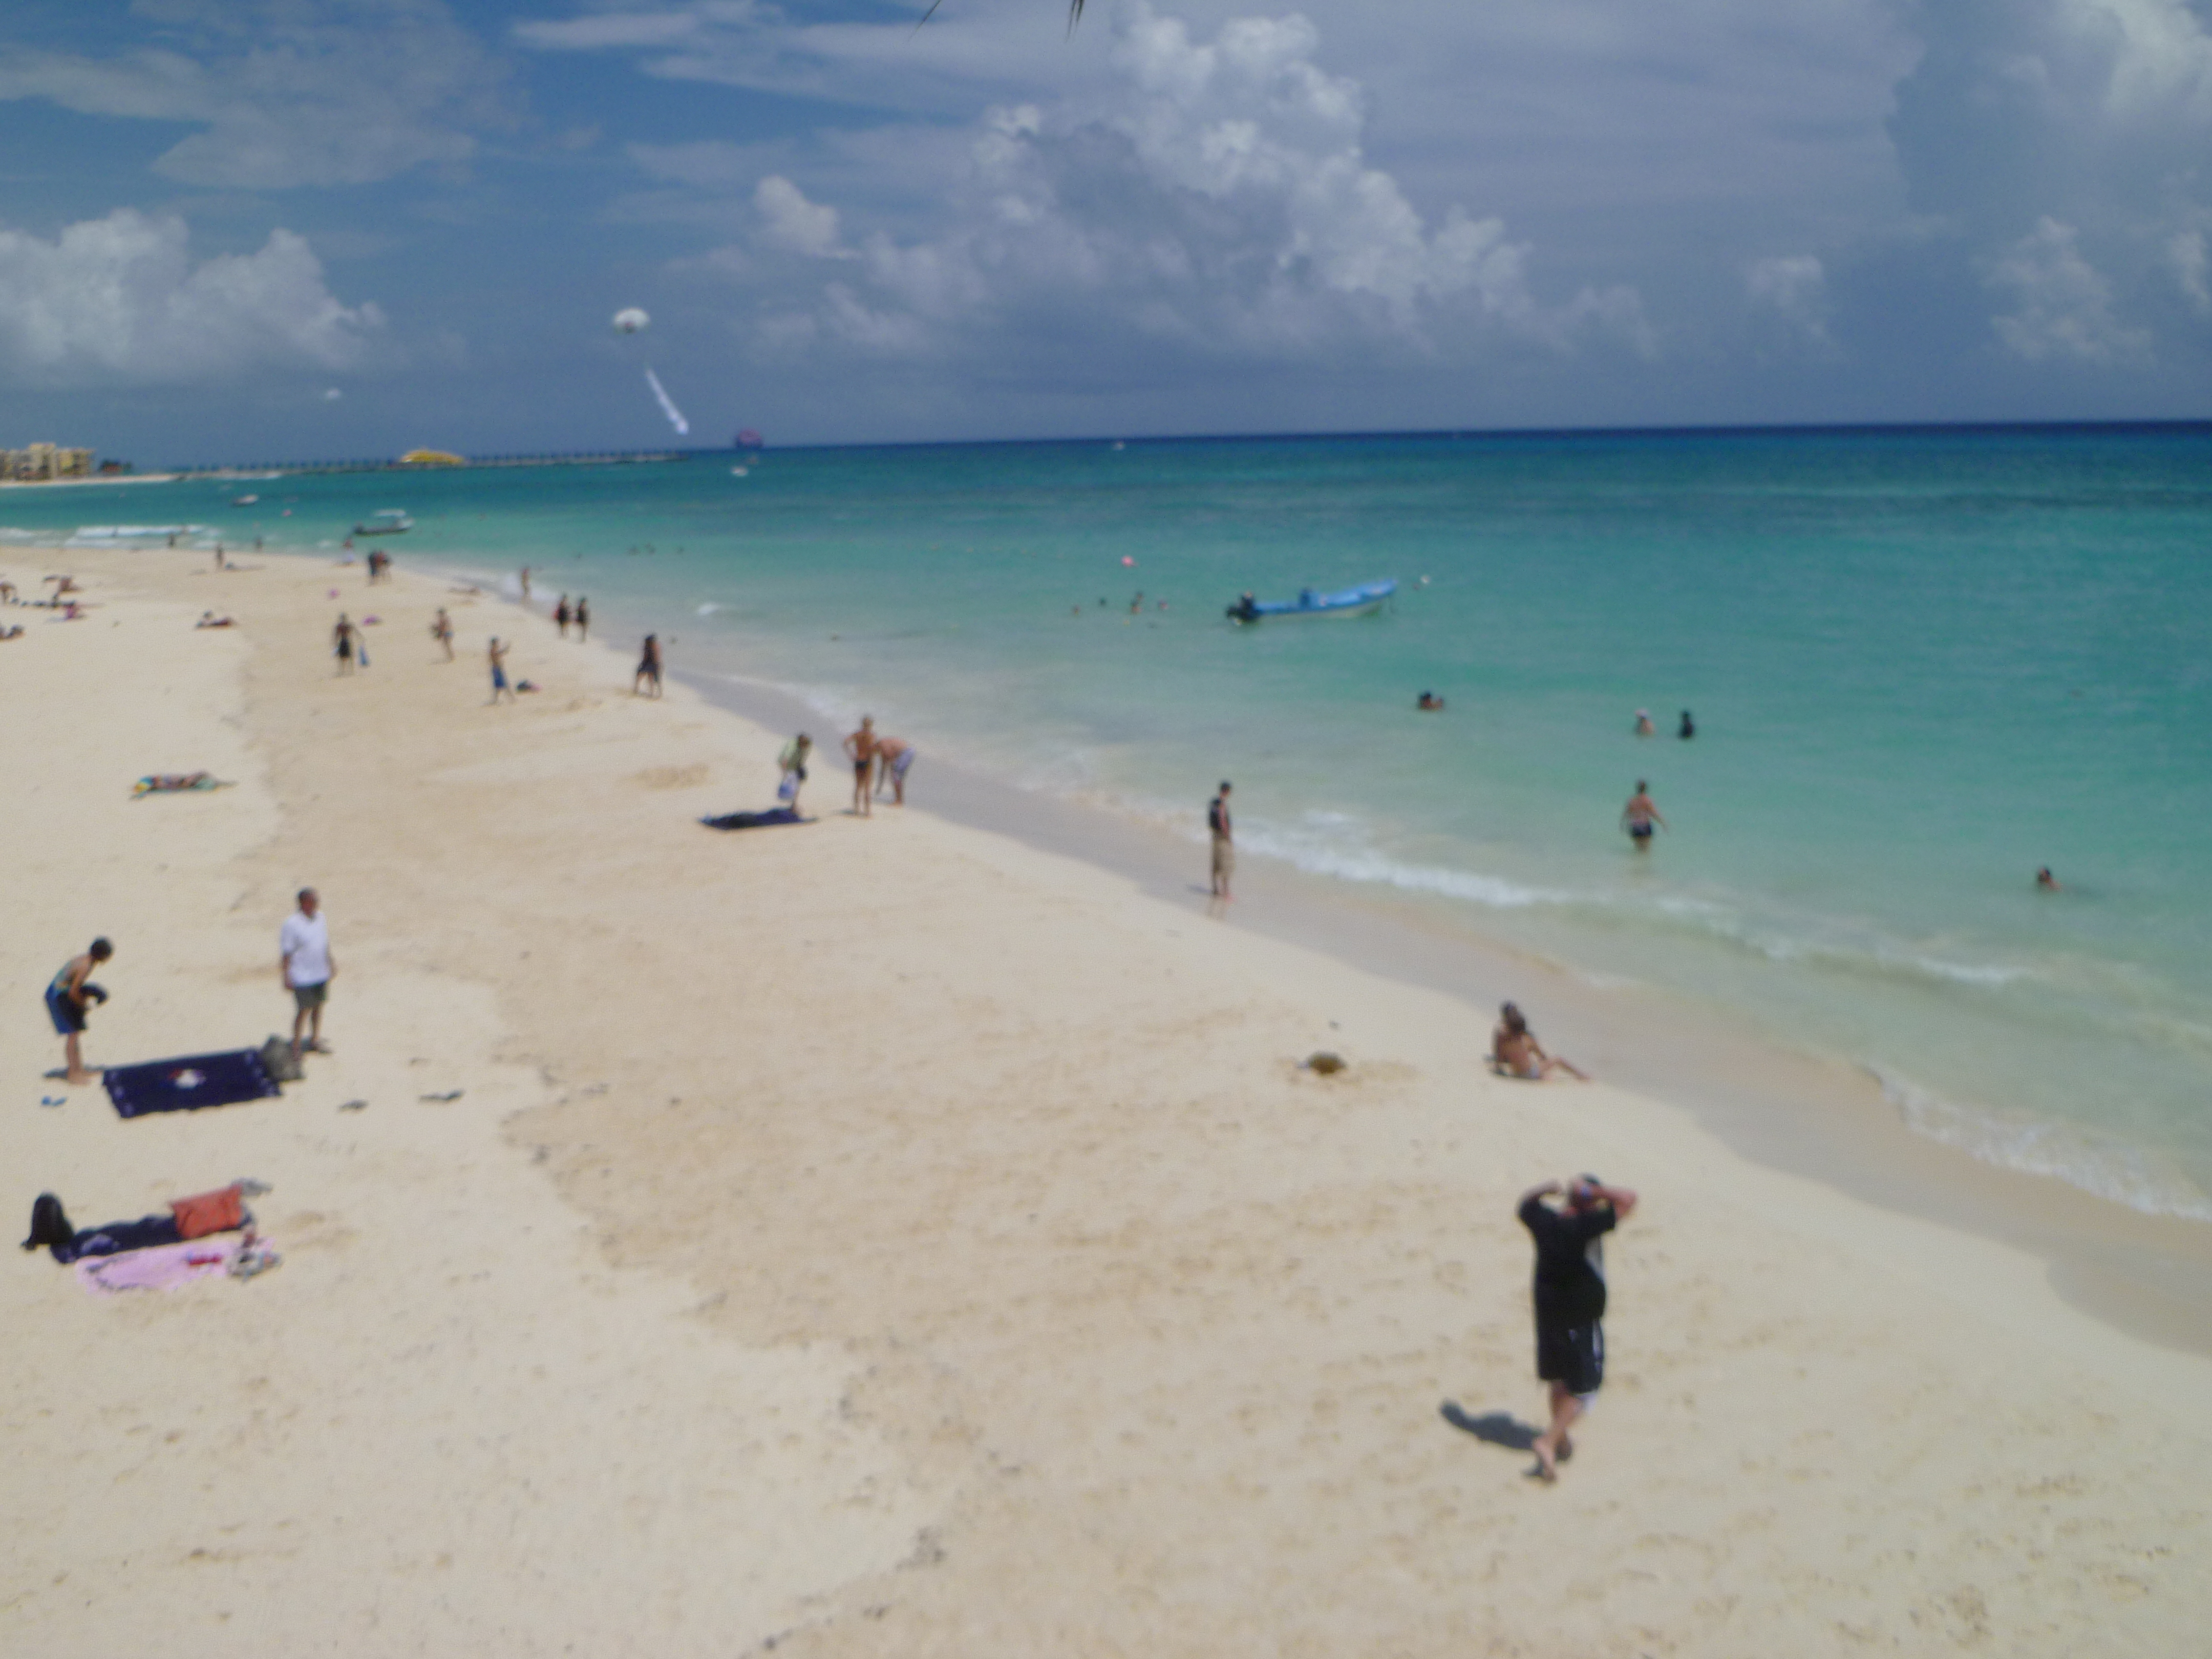 Playa del Carmen in the Riviera Maya in Mexico with people at the beach on a sunny day